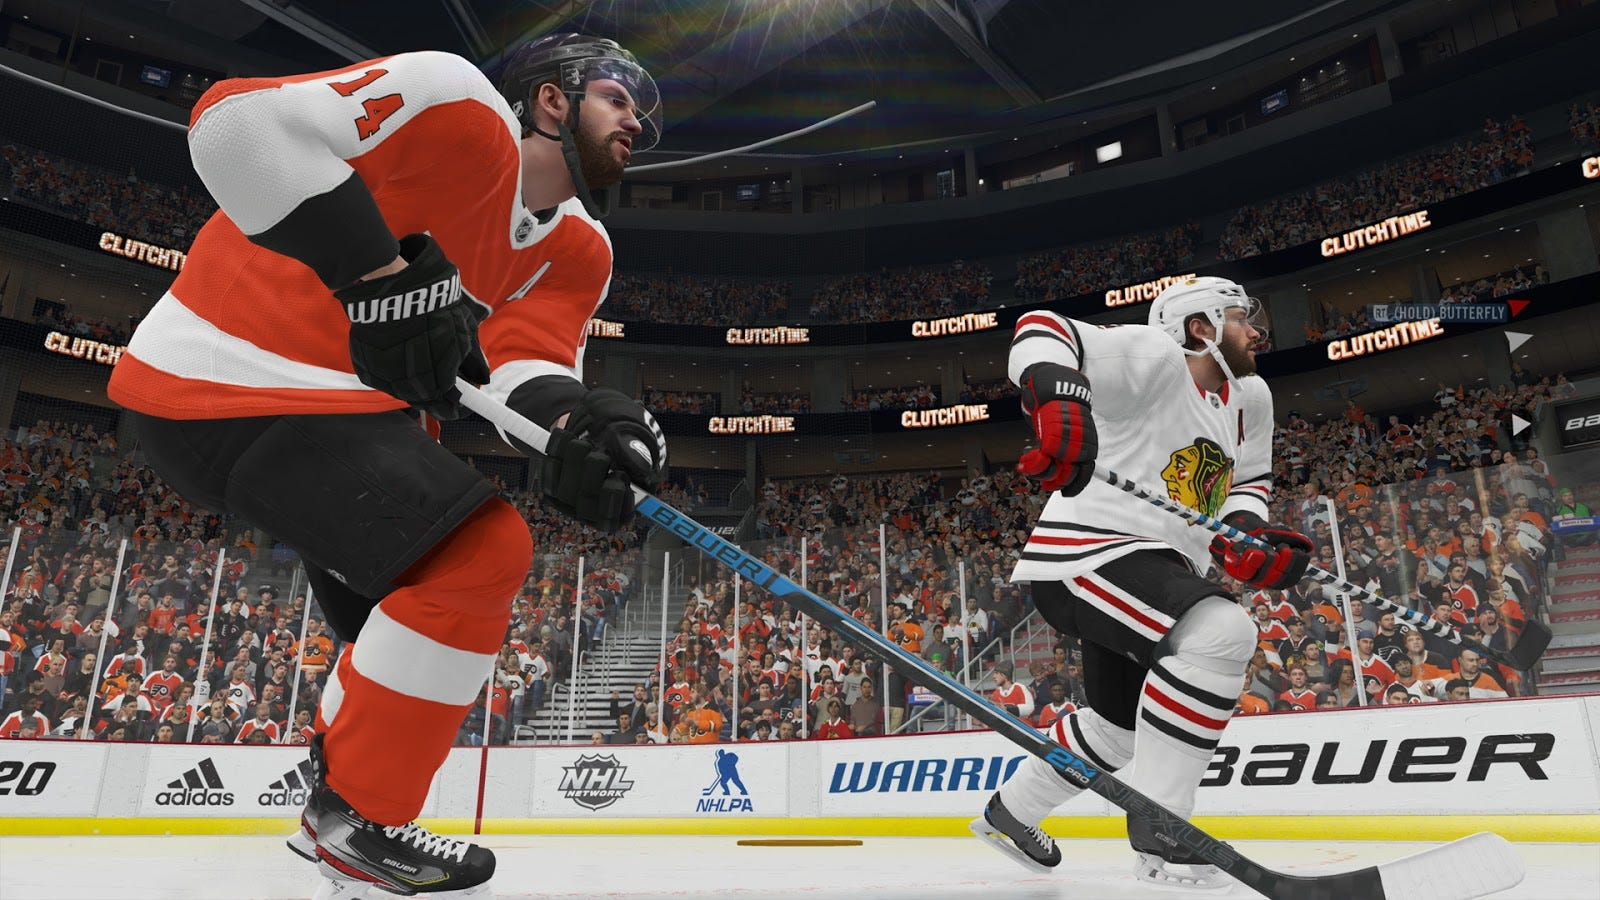 I Never Got Into Real Hockey But I Love NHL Video Games